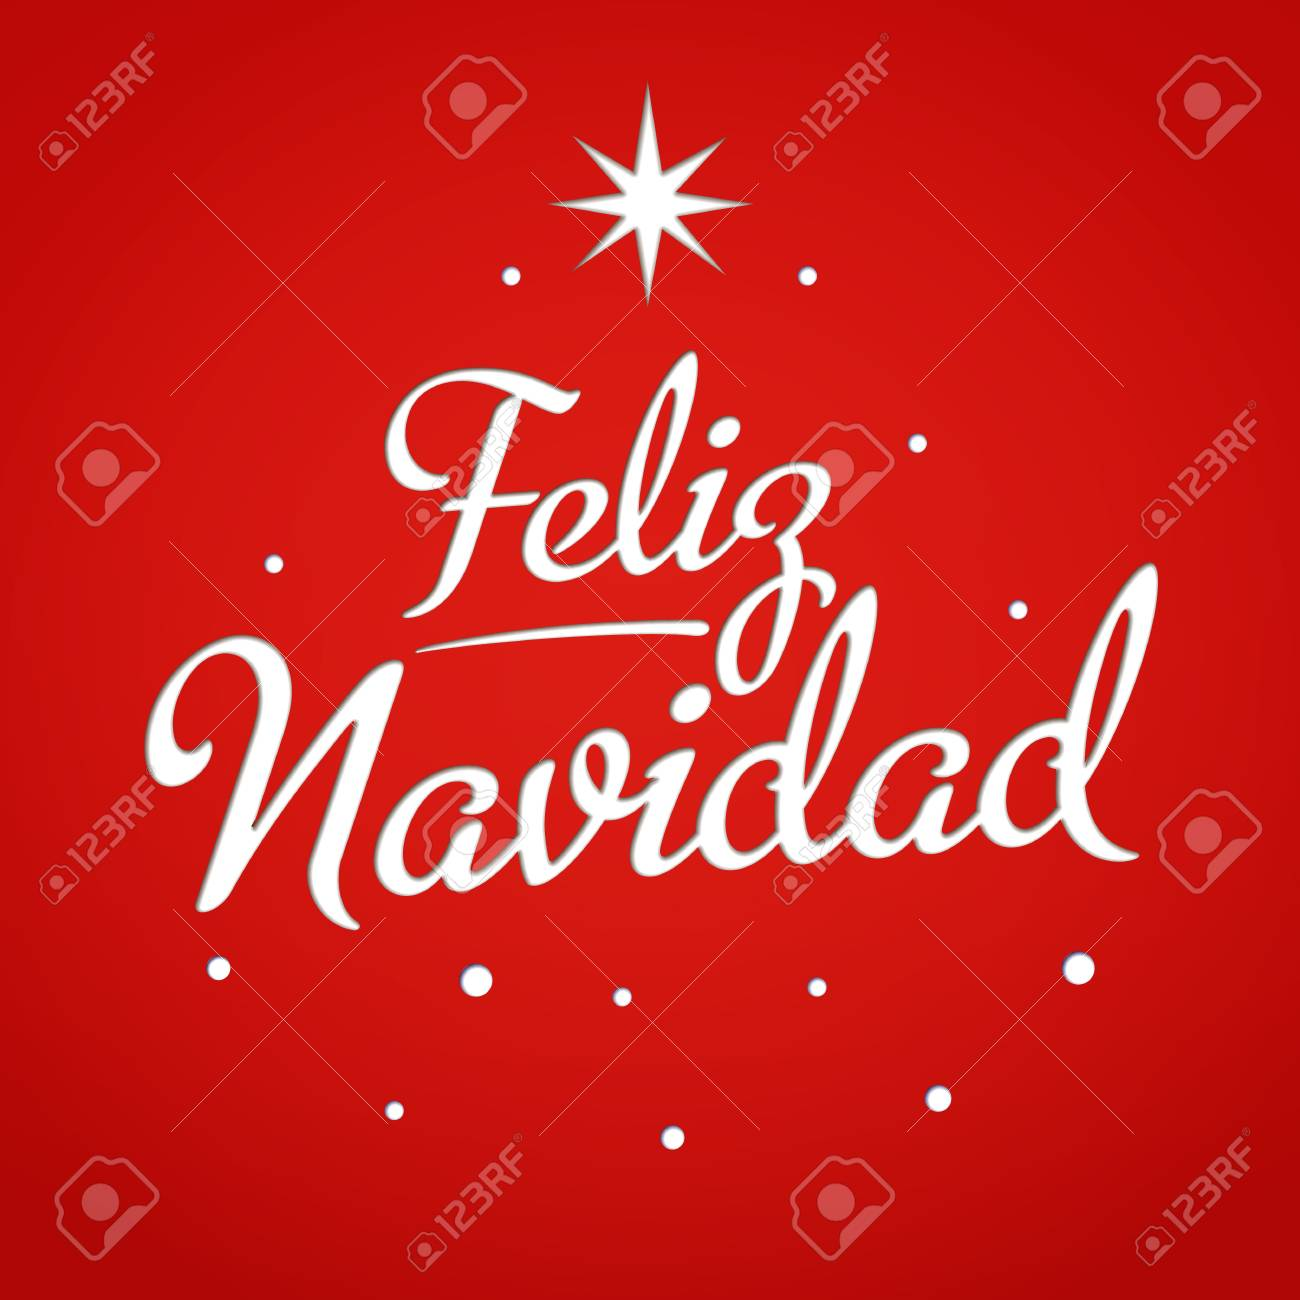 Merry Christmas Card Template With Greetings In Spanish Feliz